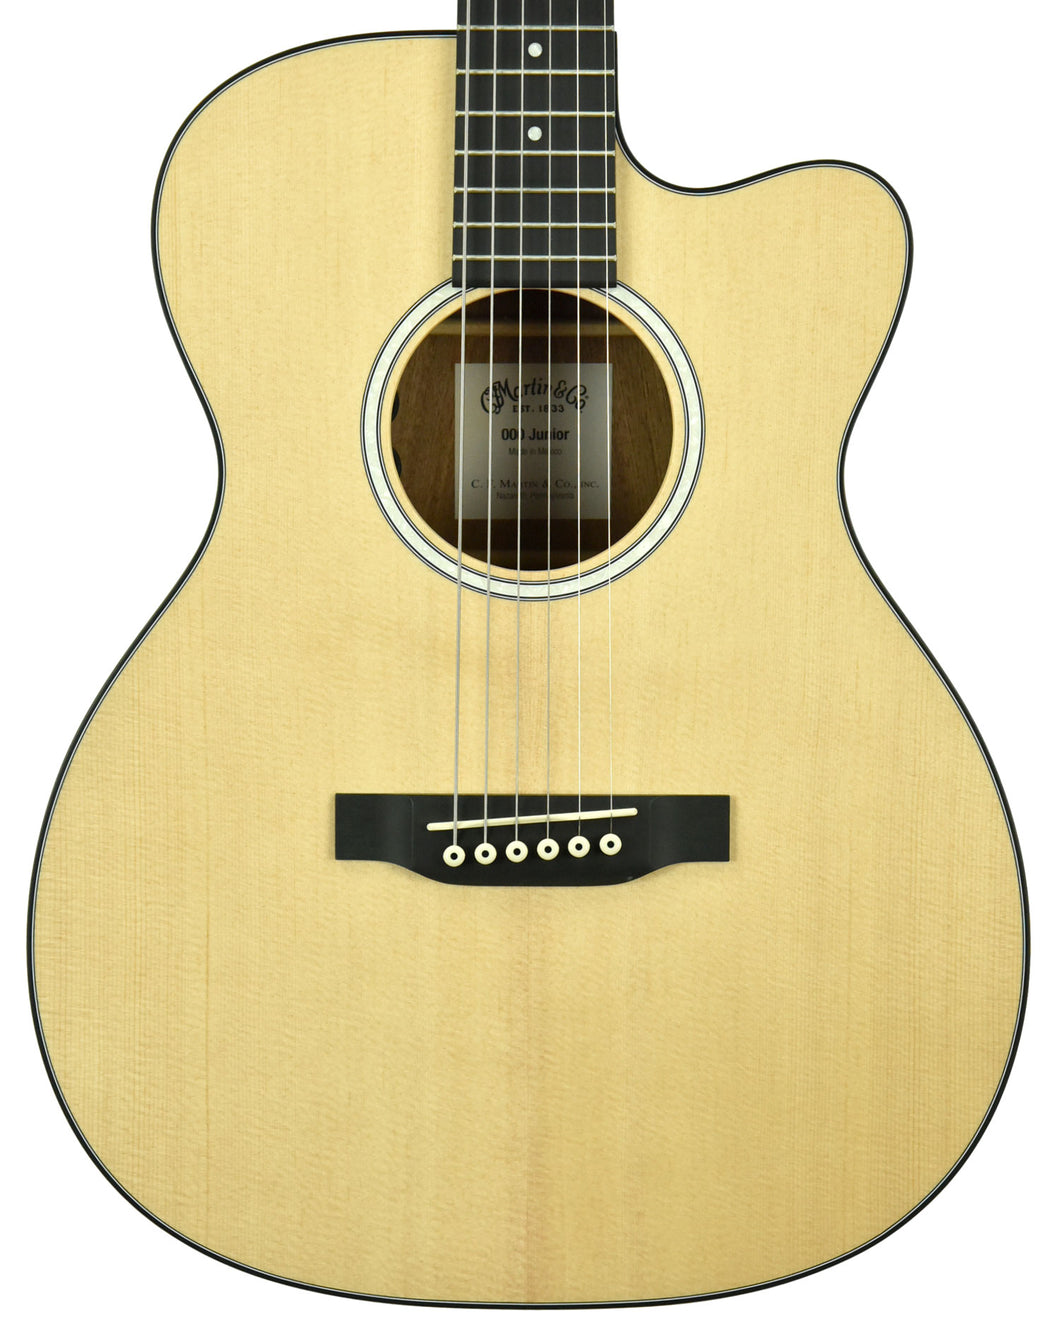 Martin 000-CJRe Acoustic Electric Guitar 2323731